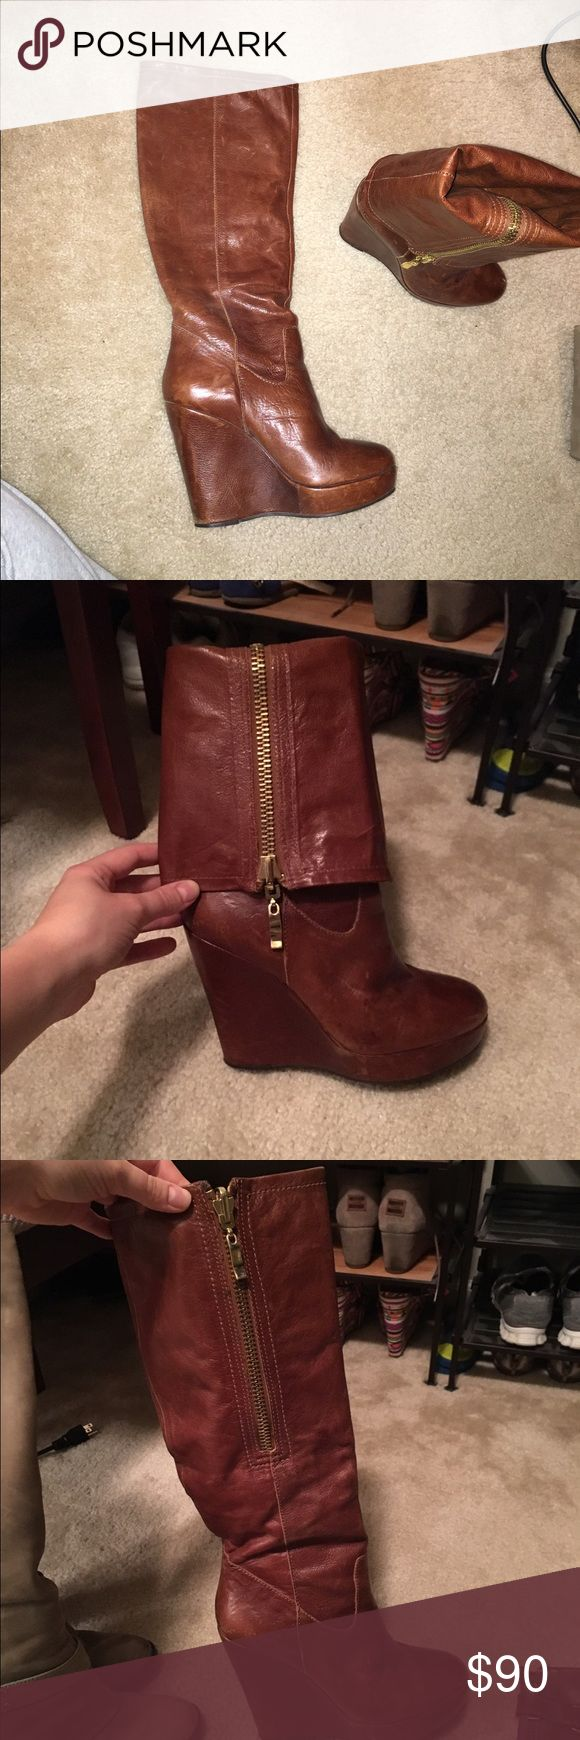 Steven (Madden) leather boots Size 8.5, wedge heel, great condition, so comfortable and easy to walk in. Gold zipper. Can be folded down and worn multiple ways as knee high or as bootie. Steve Madden Shoes Heeled Boots